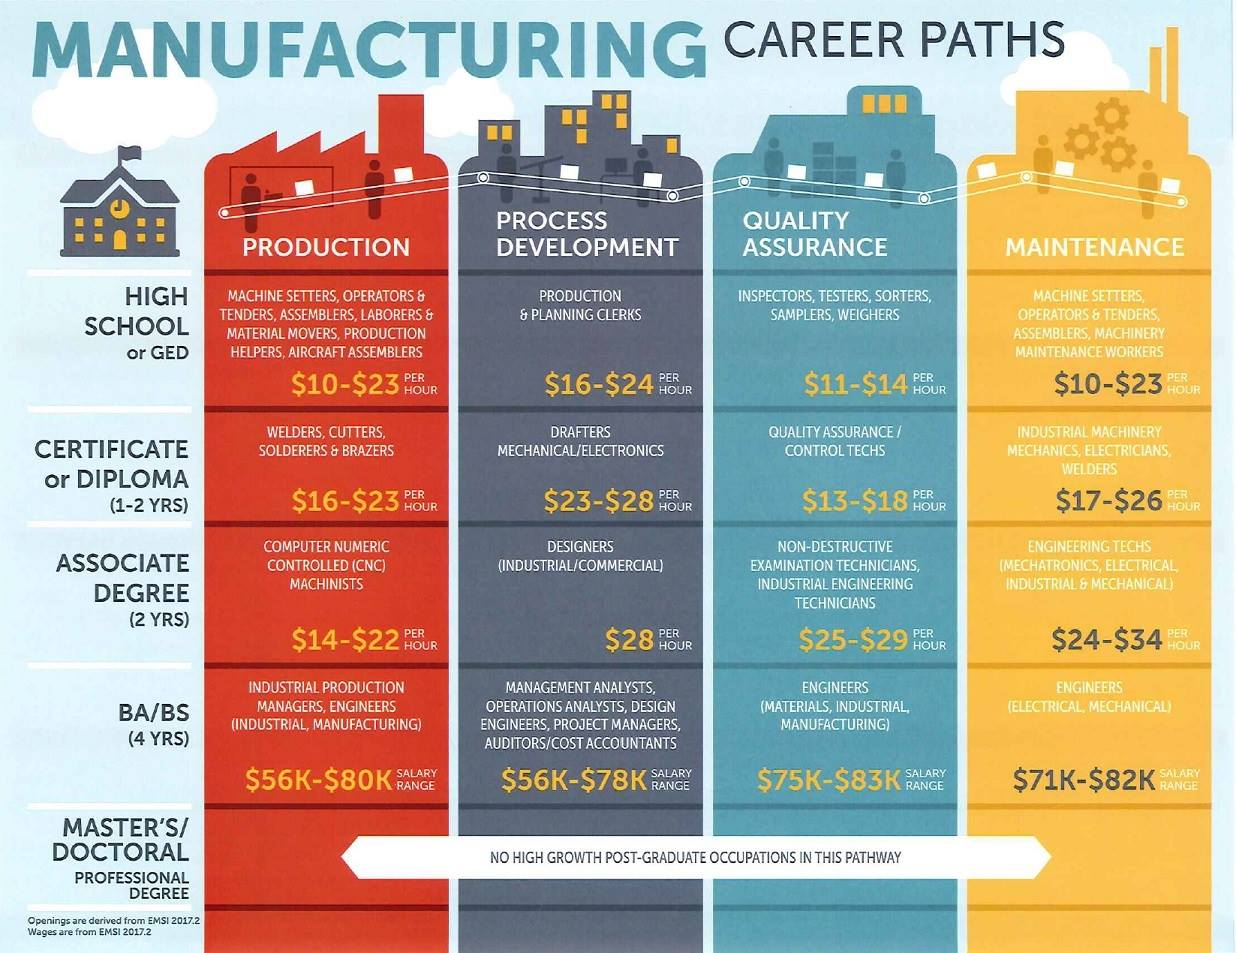 manufacturing career path.jpg